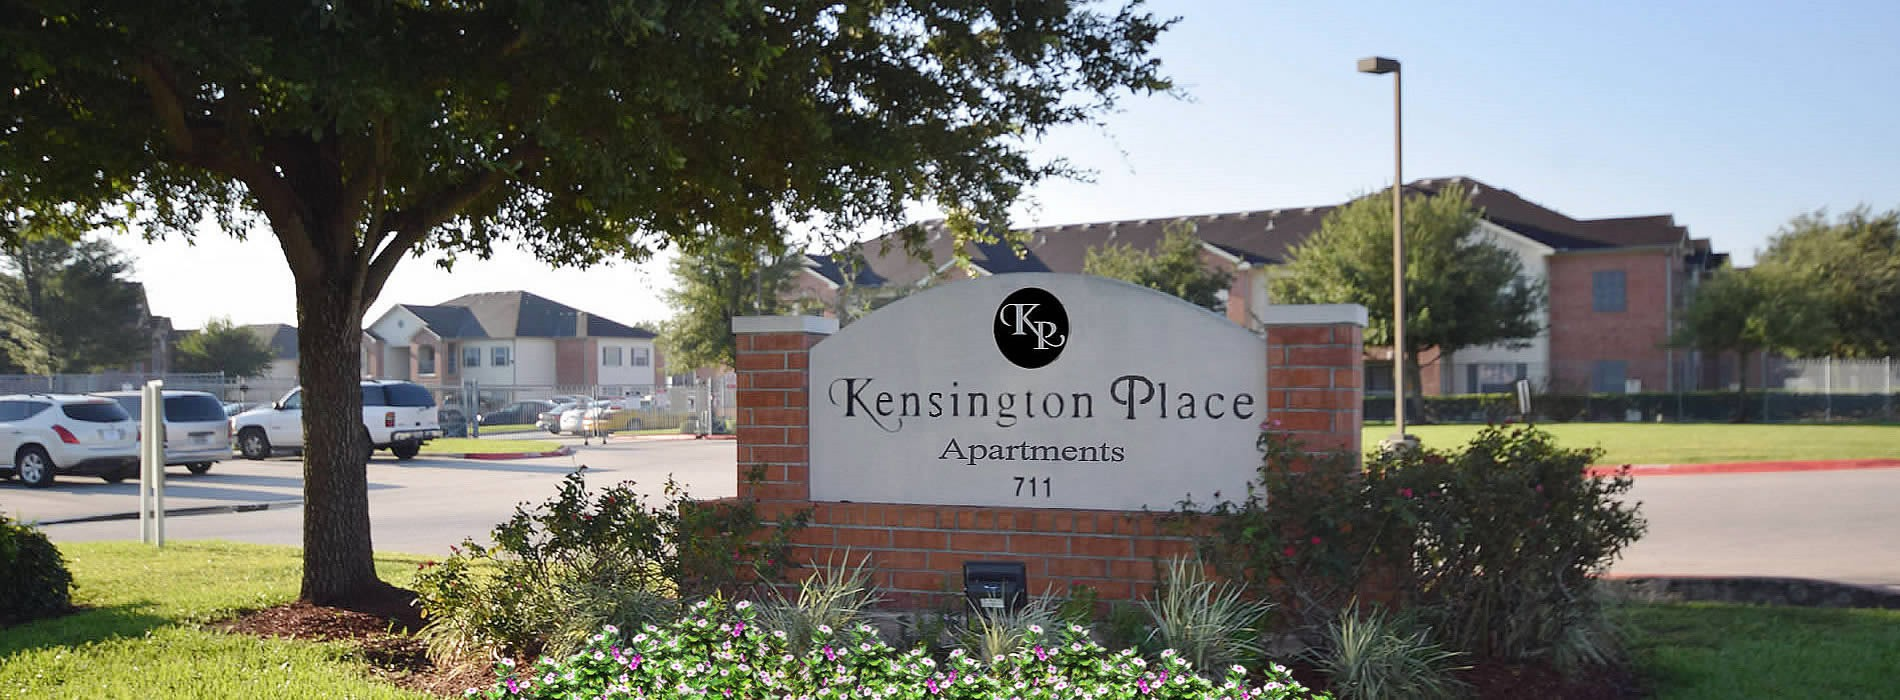 Welcome To Kensington Place Apartments